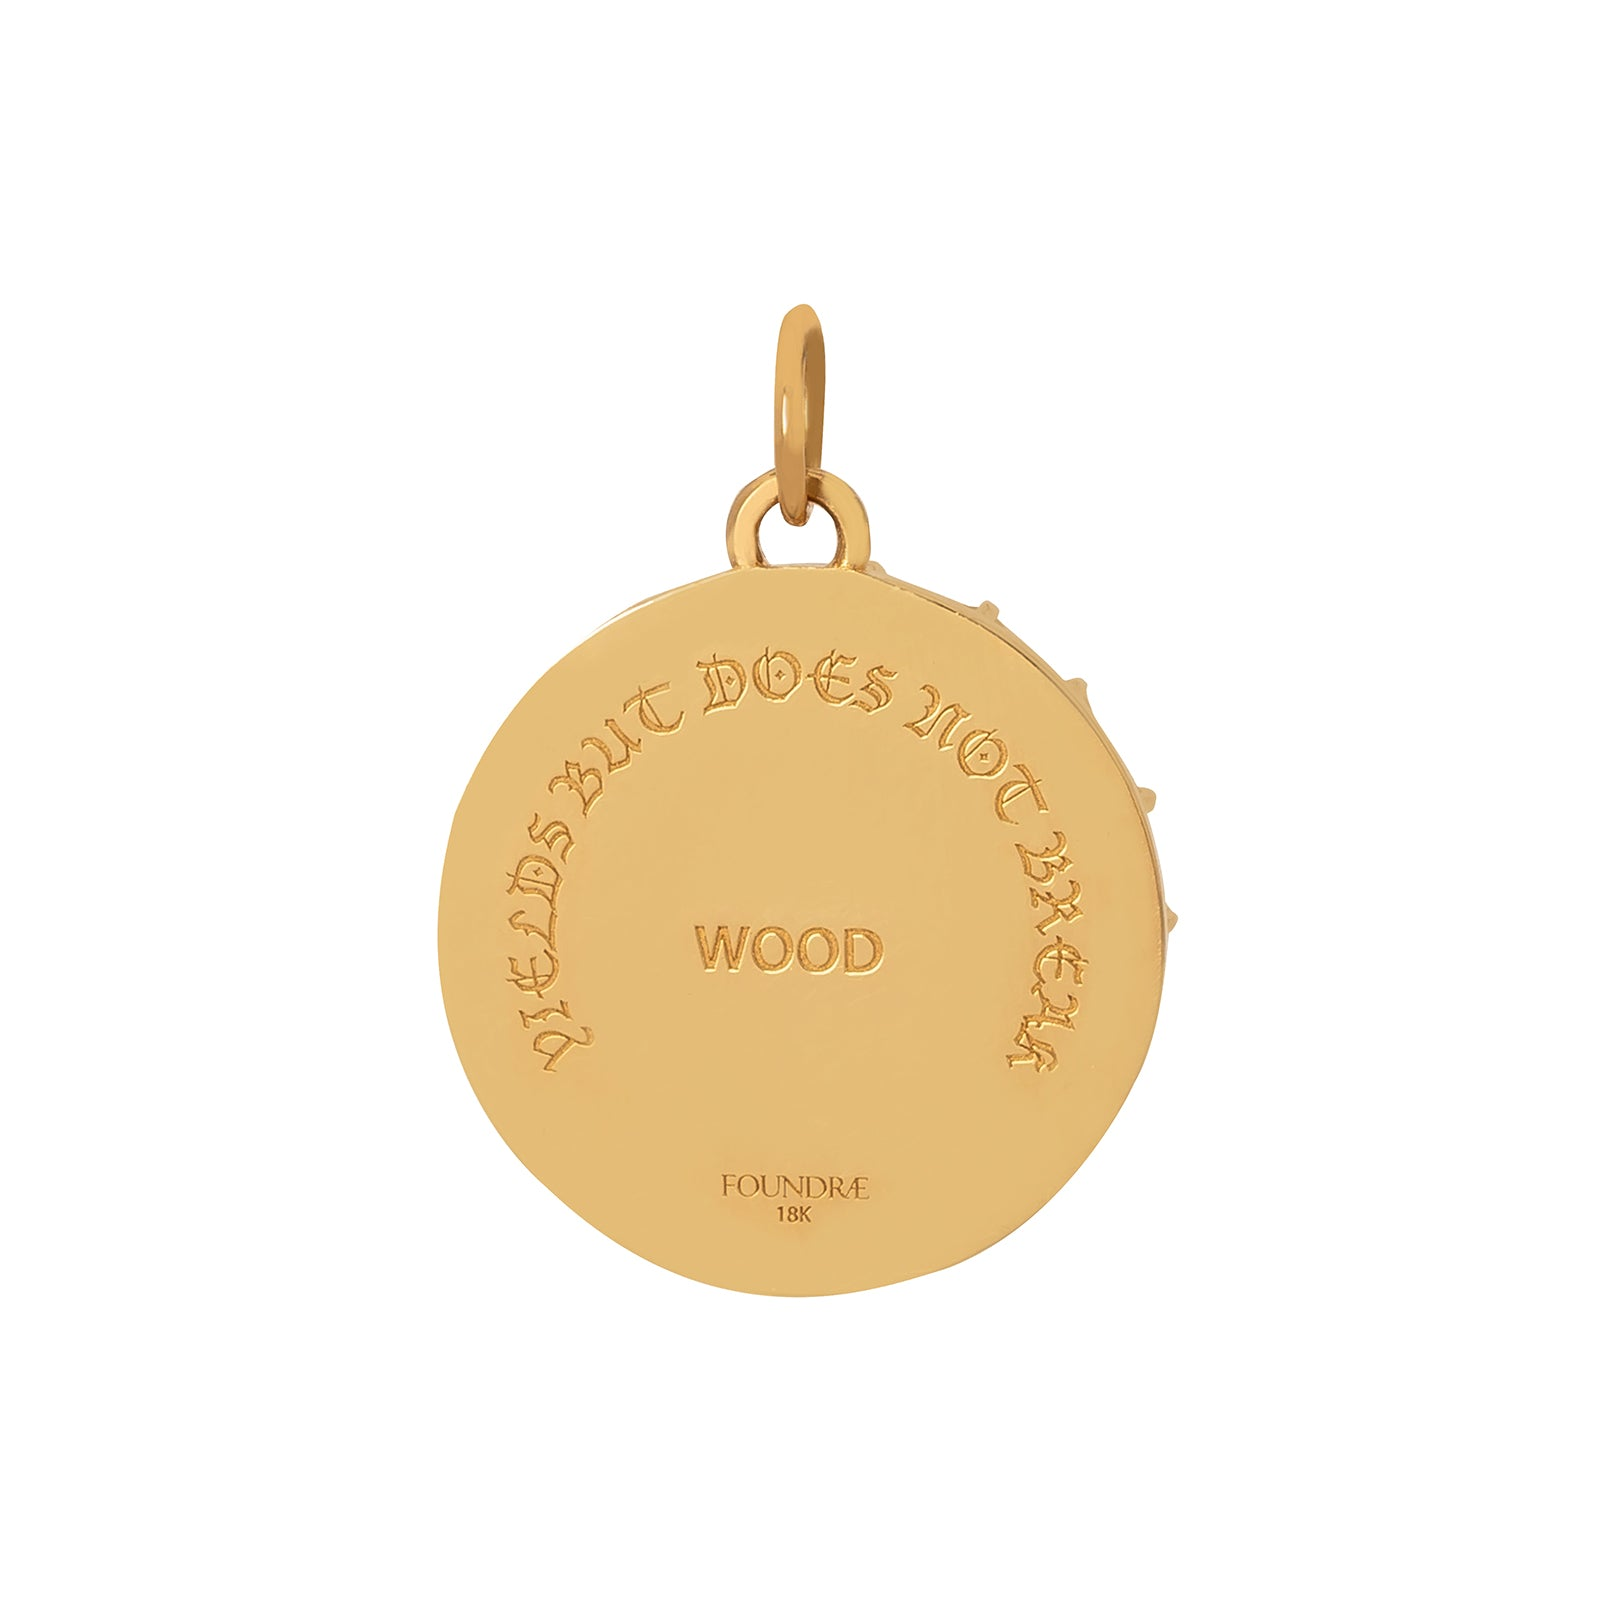 Foundrae Wood Badge Medallion - Charms & Pendants - Broken English Jewelry